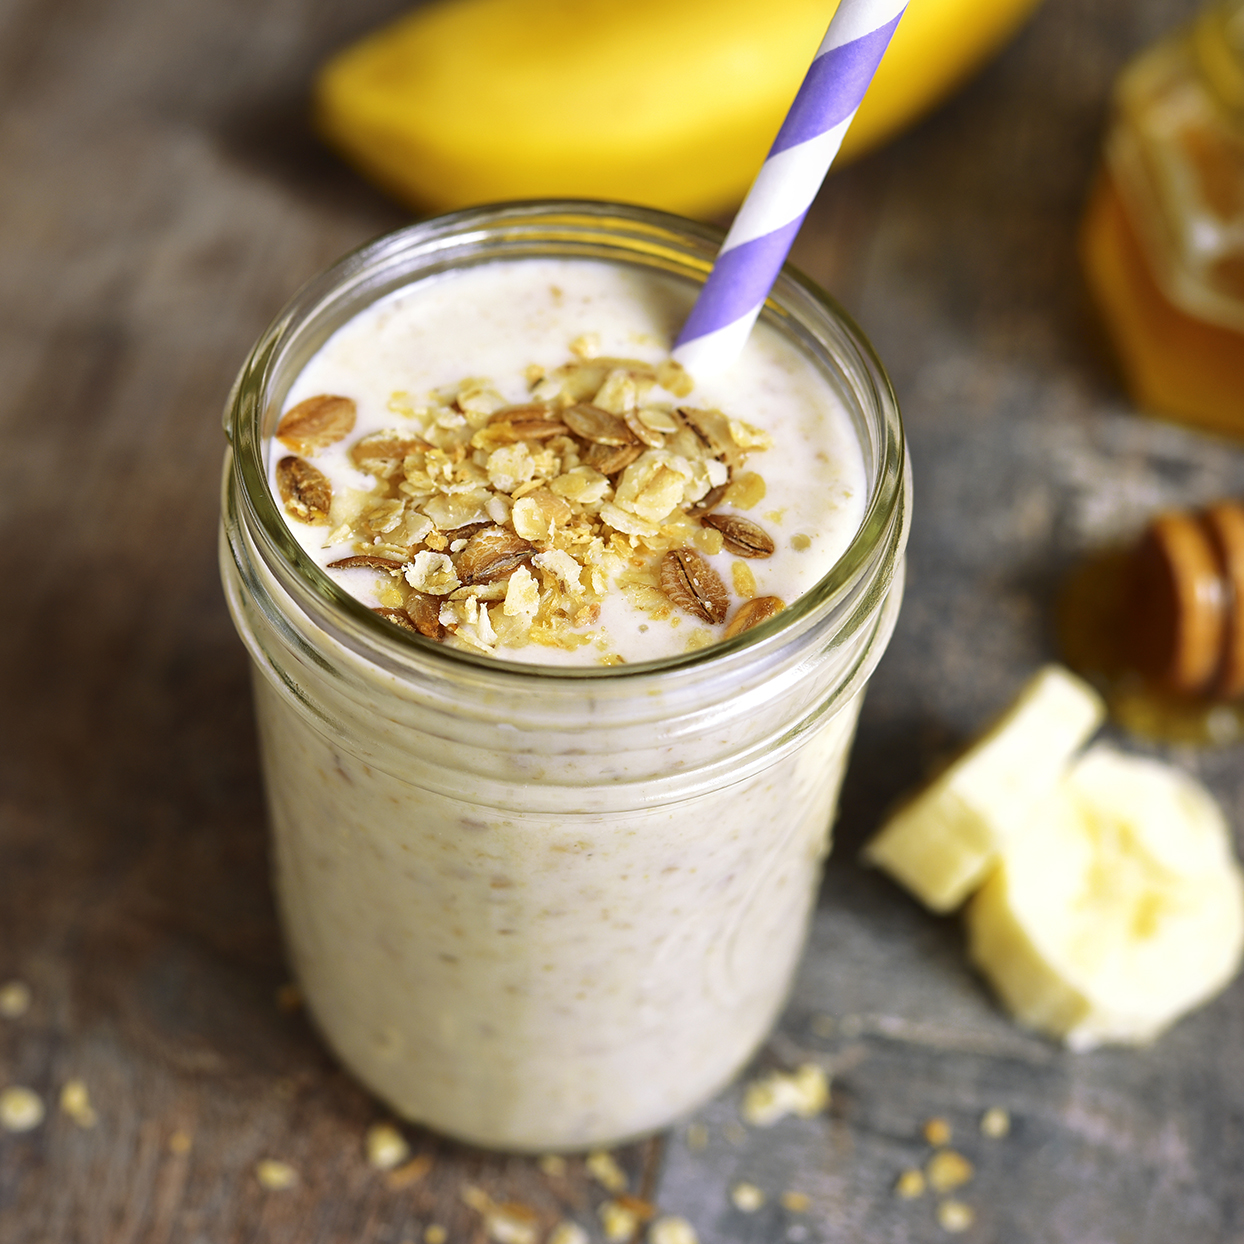 Oats and Banana Protein Smoothie